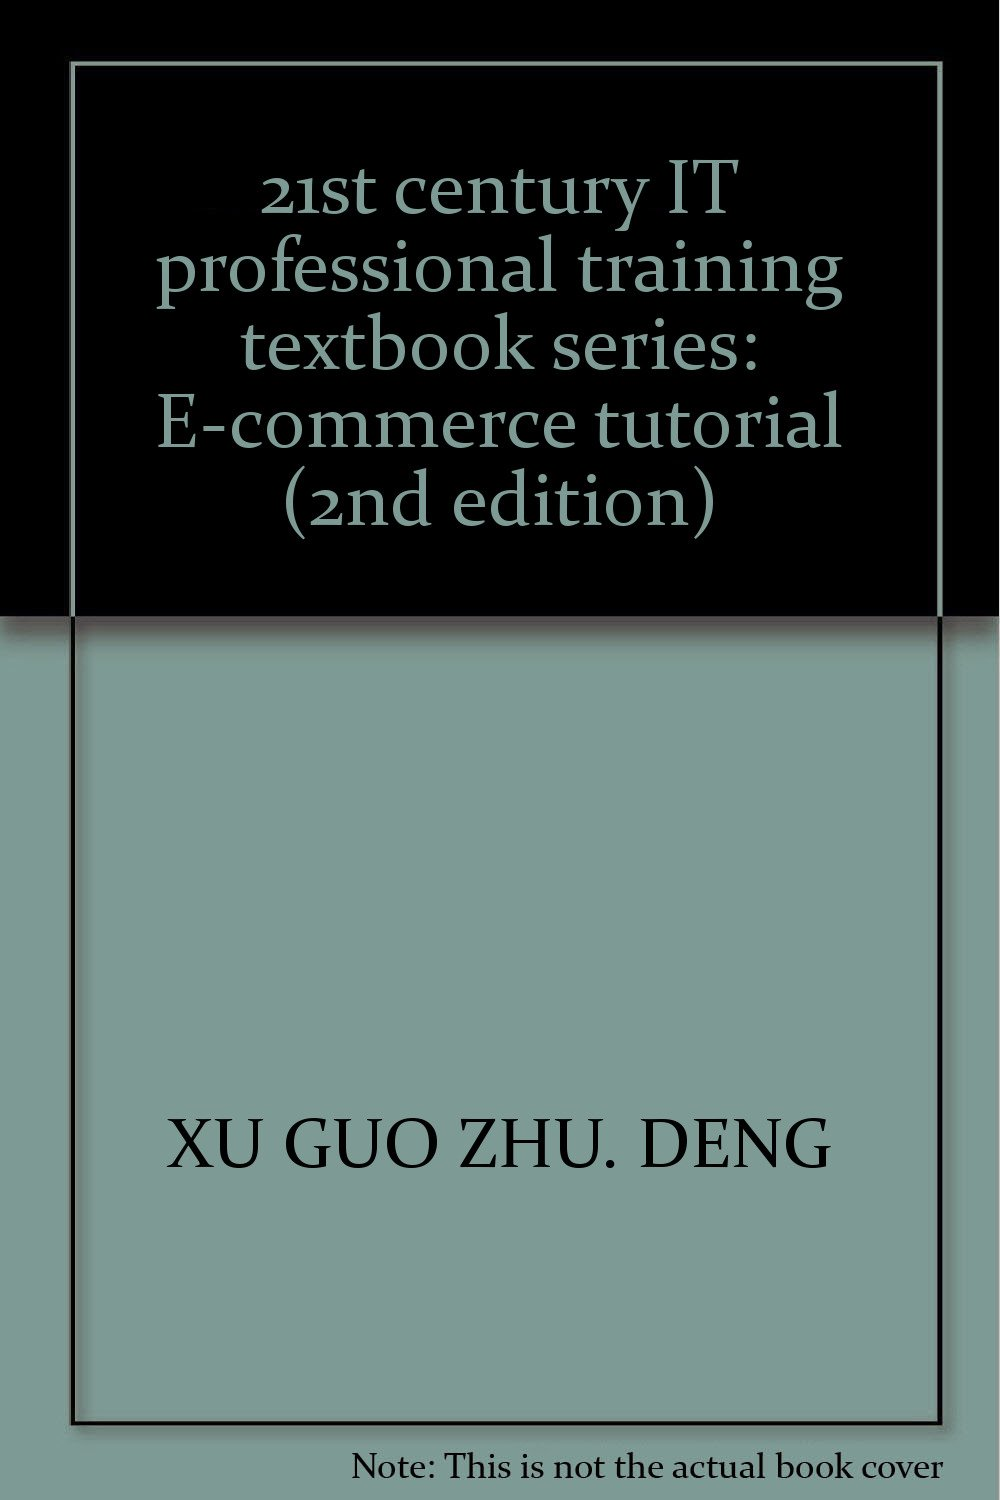 21st century IT professional training textbook series: E-commerce tutorial (2nd edition) PDF